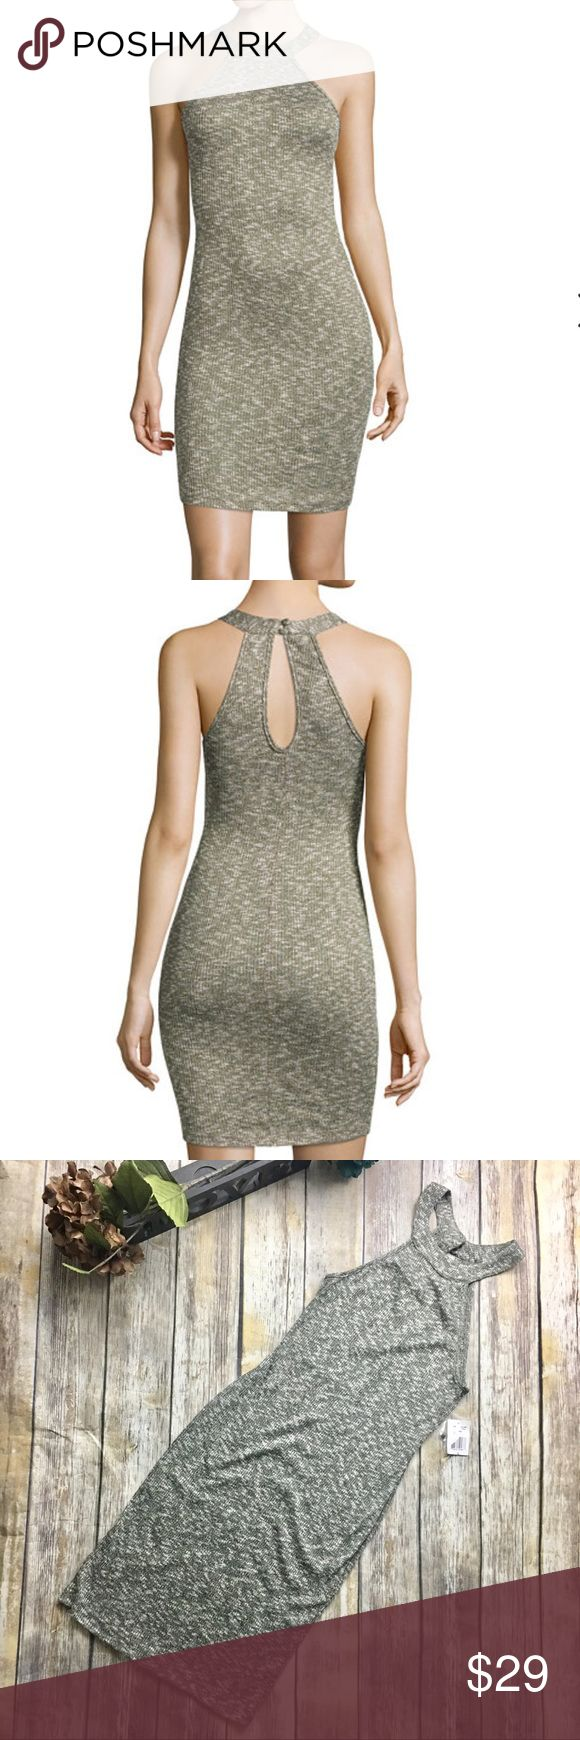 Be Smart Light Olive Green Dress Olive colored light stretchy material Halter style dress. Size large. New with tags. Rayon Polyester Spandex material. 42 inches long. 12 inch bust line laying flat without stretching material. Material is thin may need slip to be worn underneath. Size medium Be Smart Dresses Mini